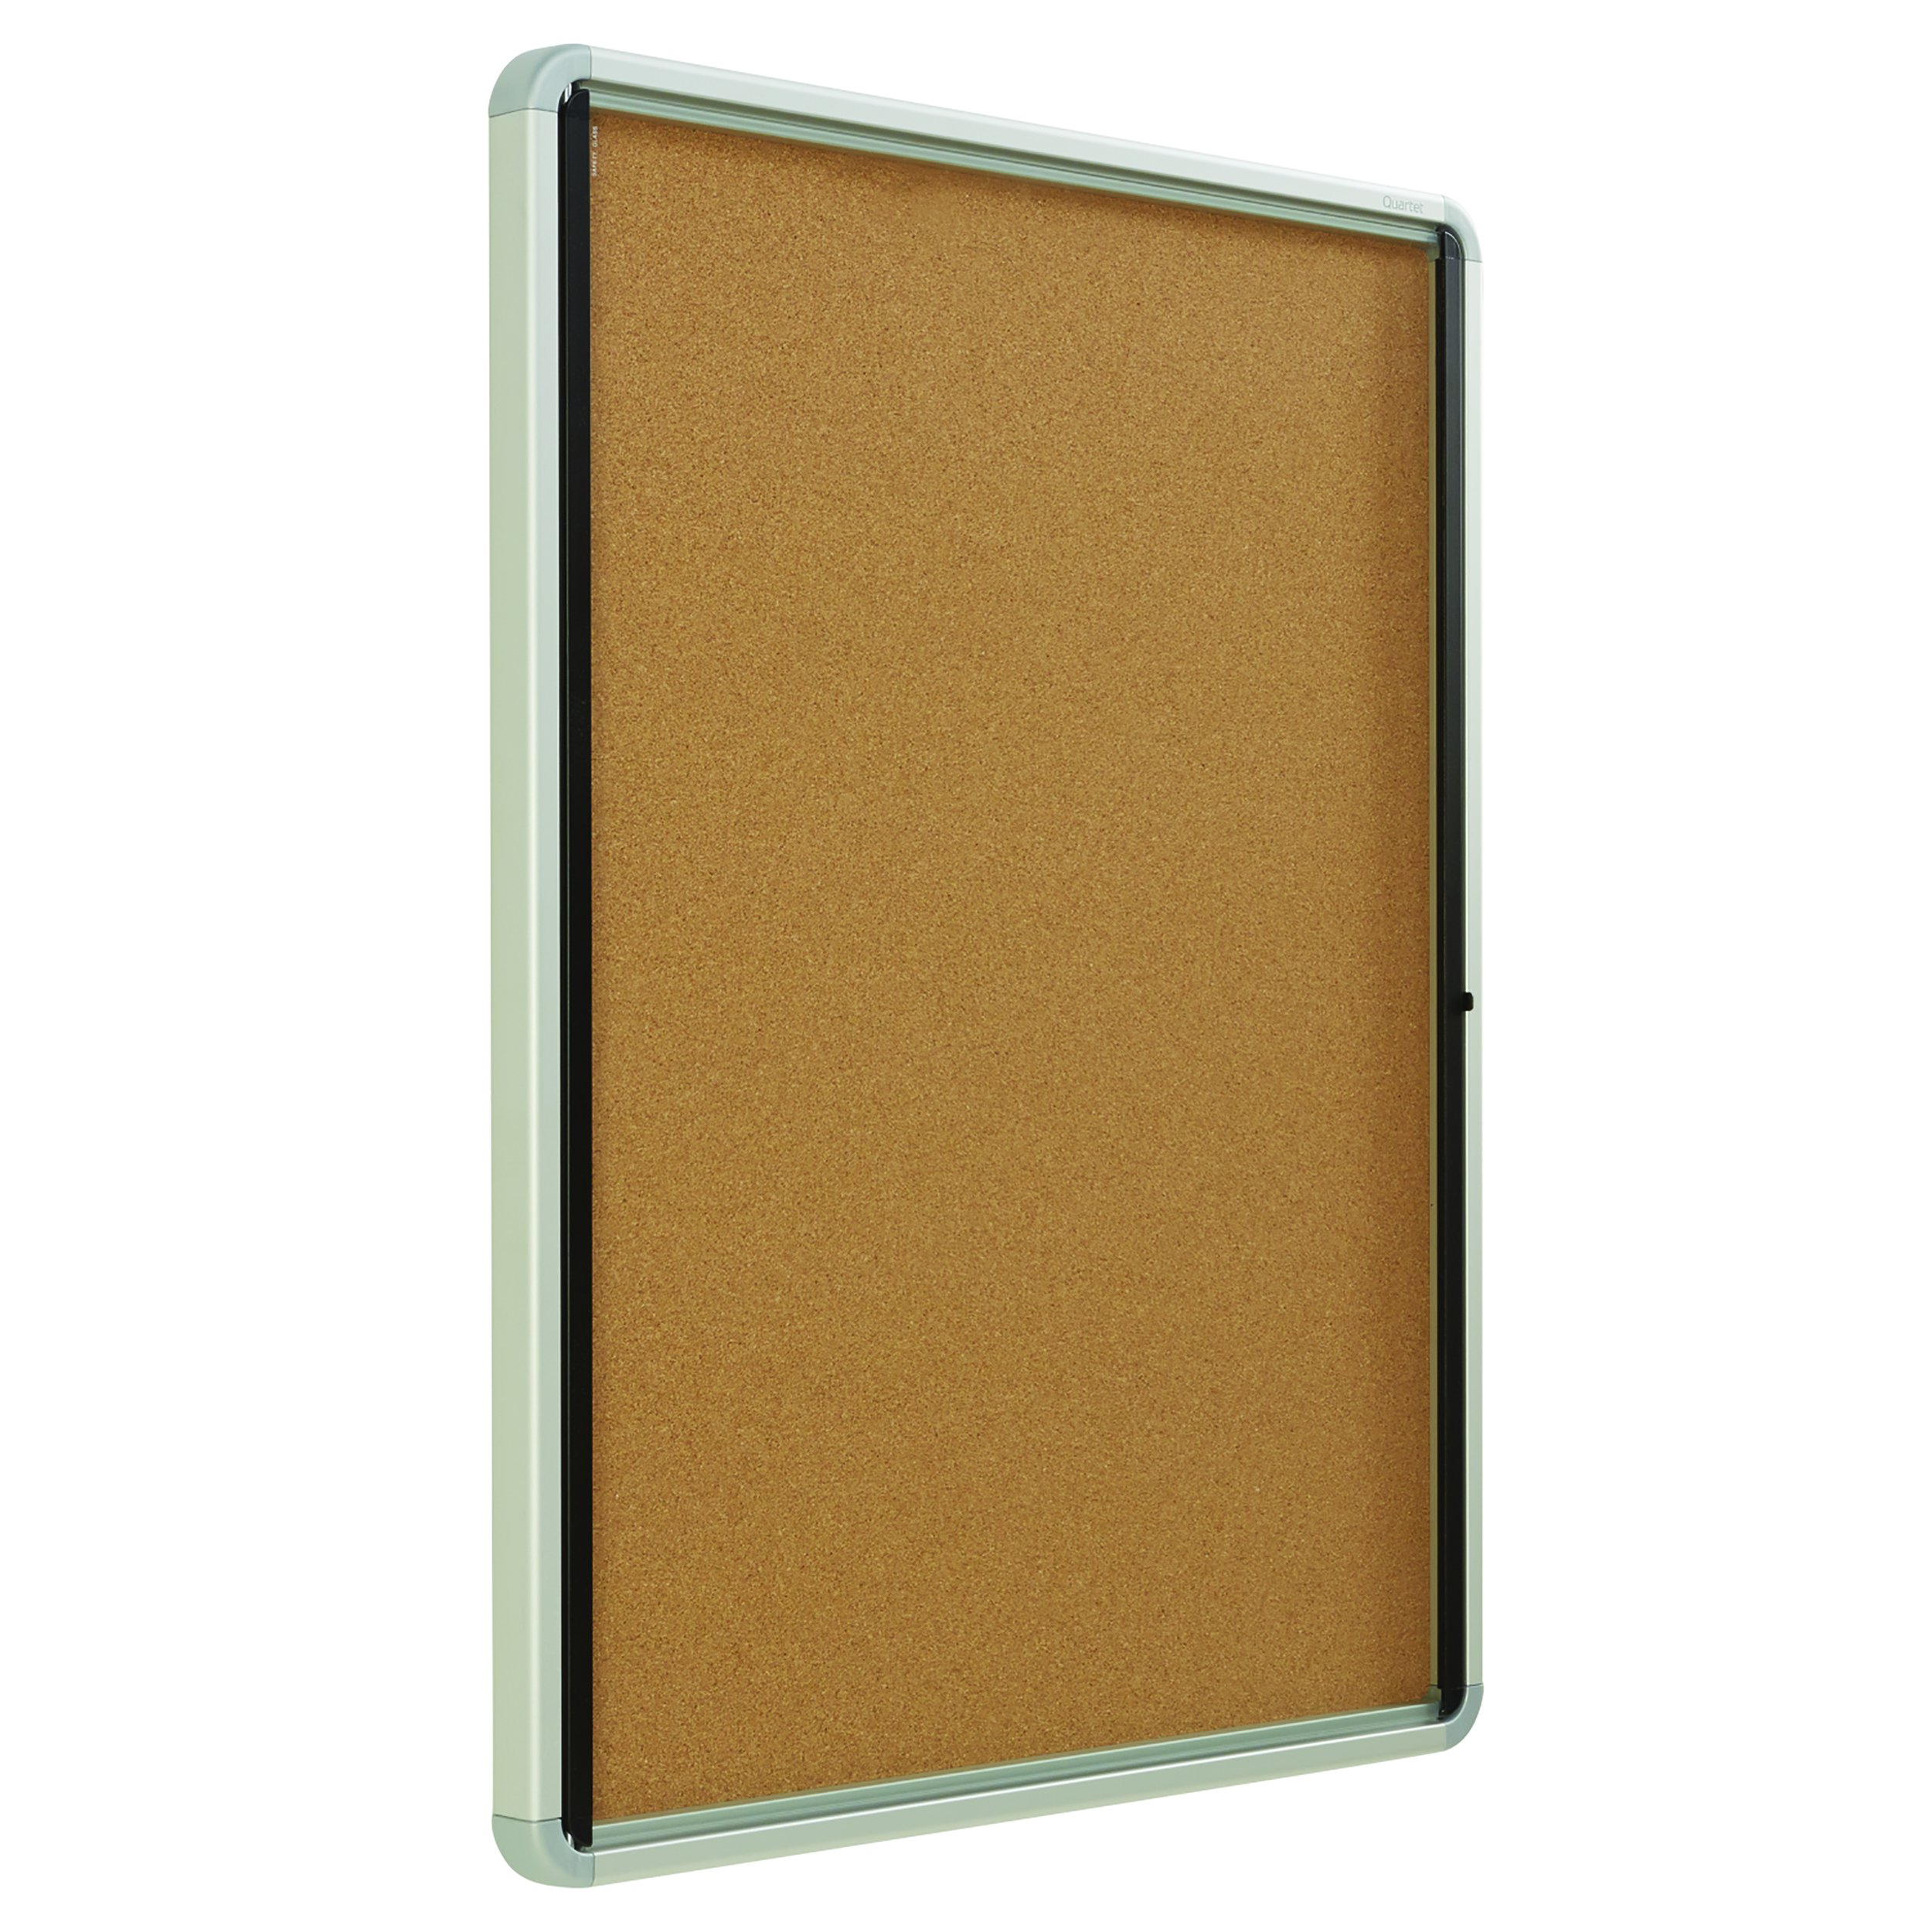 Quartet Enclosed Cork Bulletin Board, 30'' x 39'' or 9 Sheets, Swing Door, Aluminum Frame (EIHC3930)